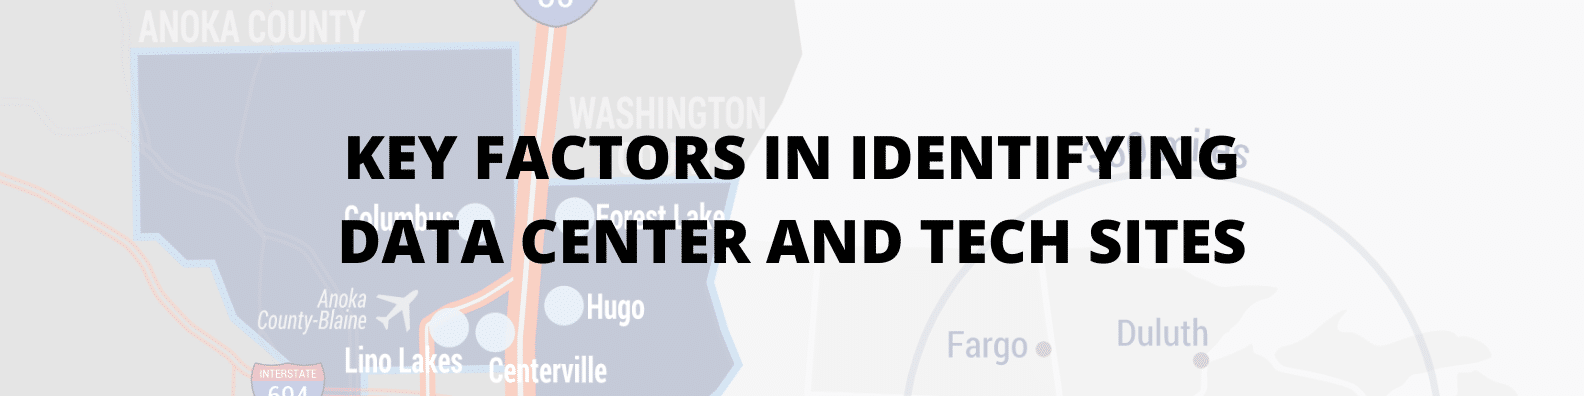 KEY FACTORS IN IDENTIFYING DATA CENTER AND TECH SITES